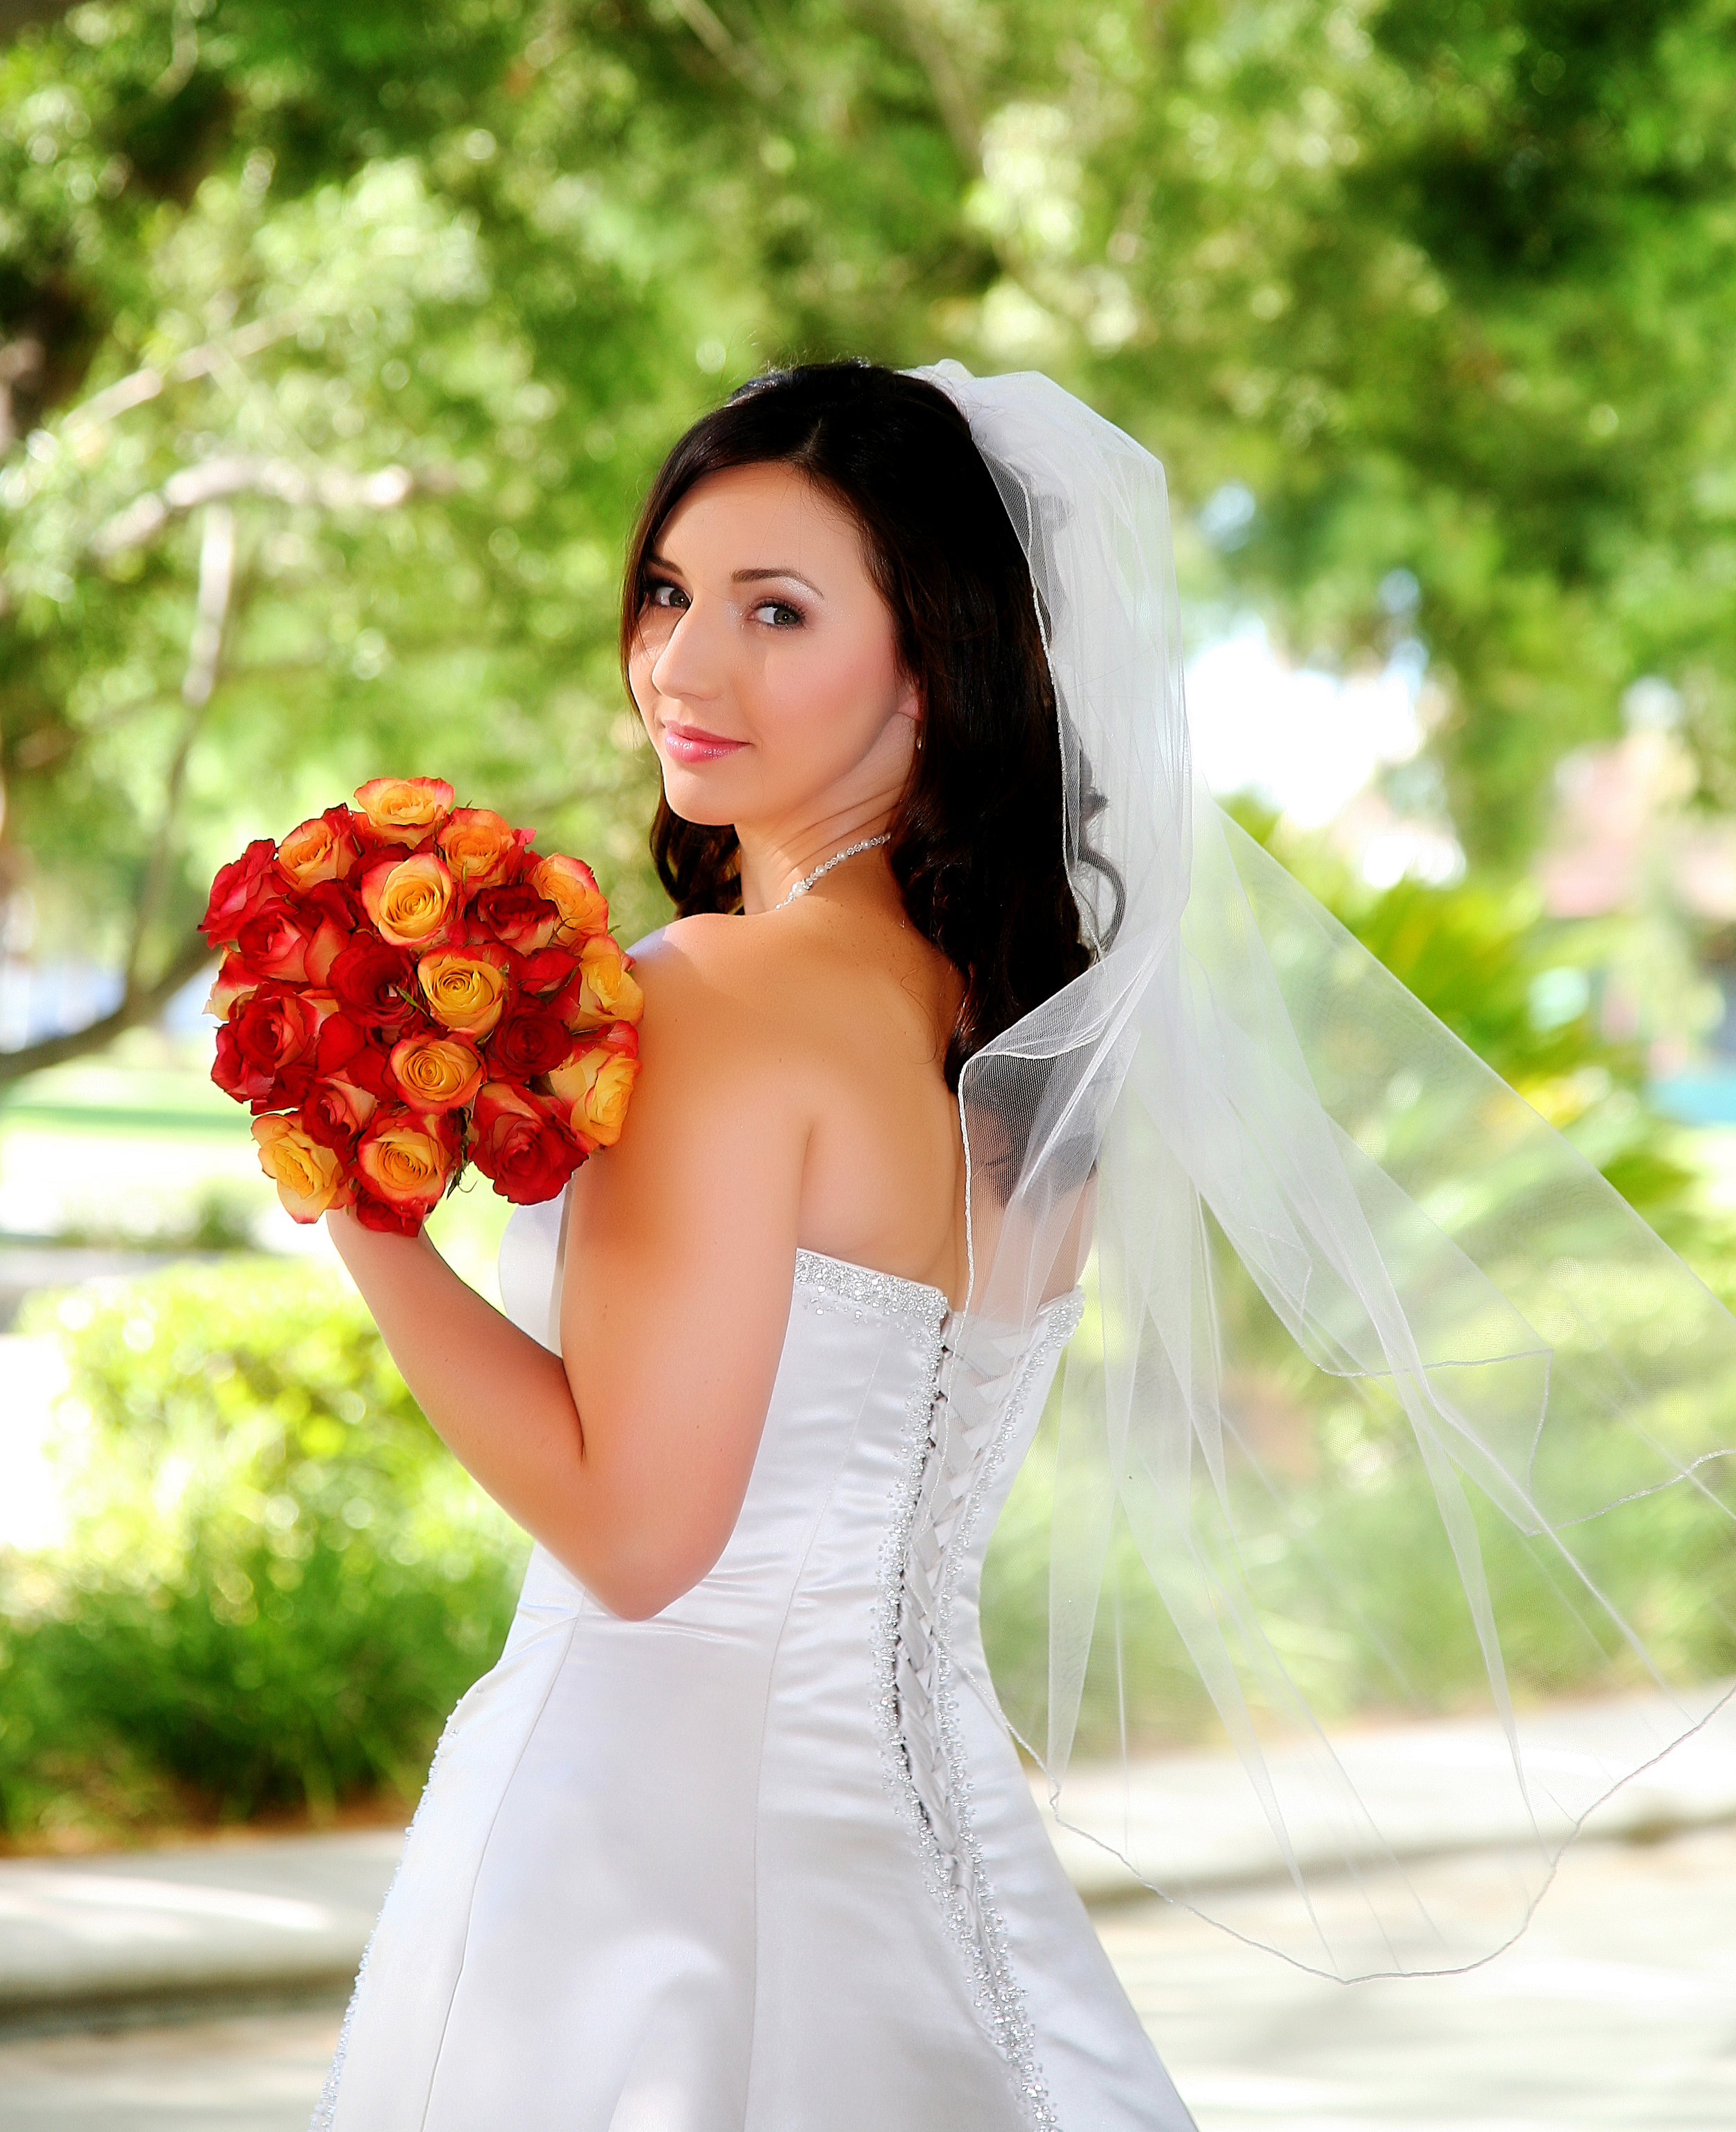 ShadowcatcherGalleryOne_SanDiegoWeddingPhotogrpaher_035.JPG